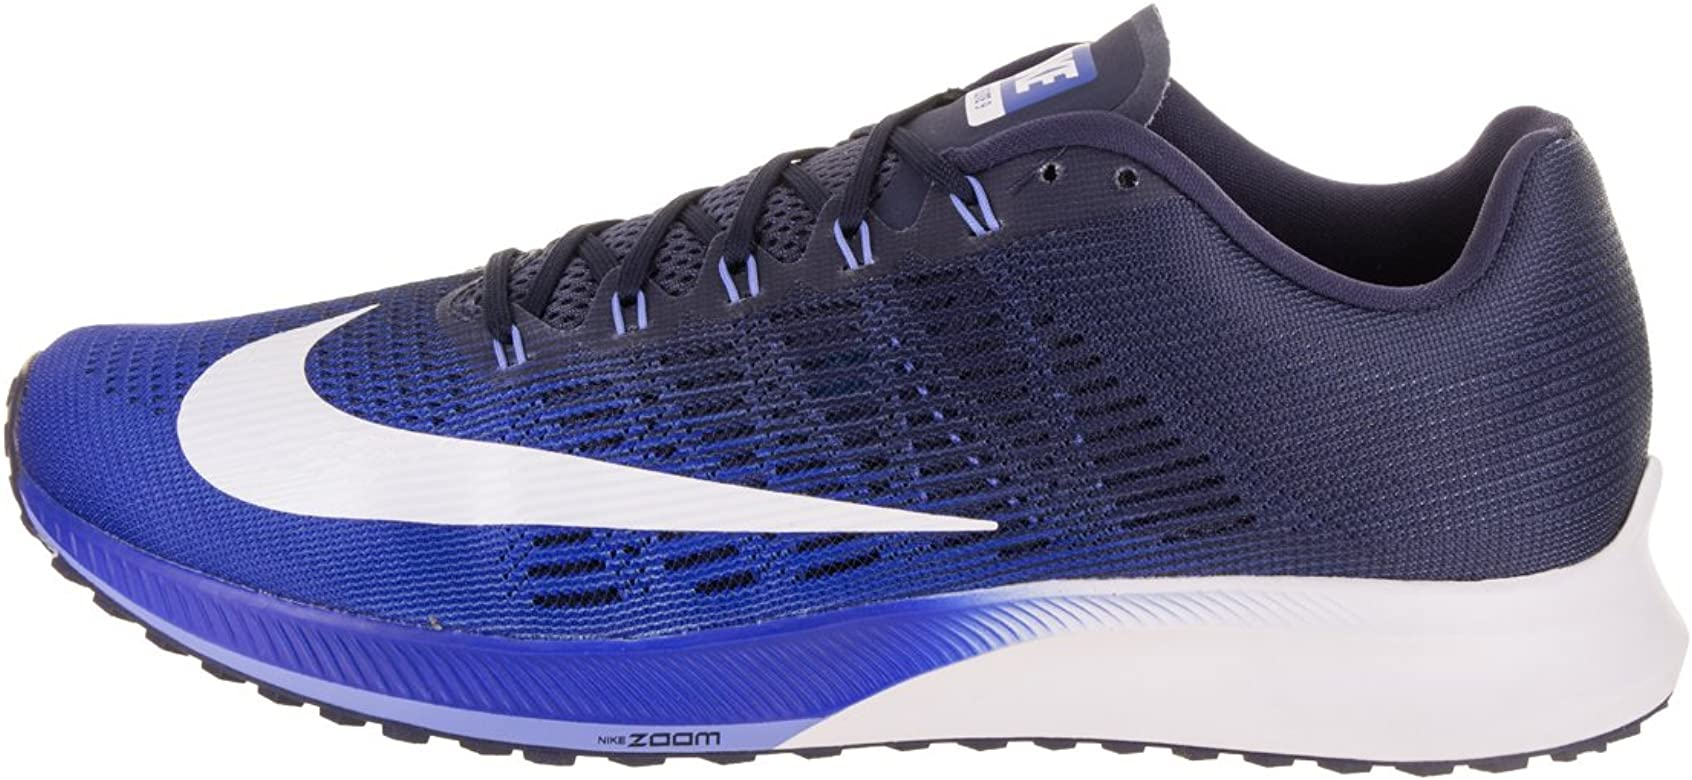 Nike Air Zoom Elite 9, Zapatillas de Running para Hombre, Multicolor (Hyper Royal/White-Ne 406), 39 EU: Amazon.es: Zapatos y complementos